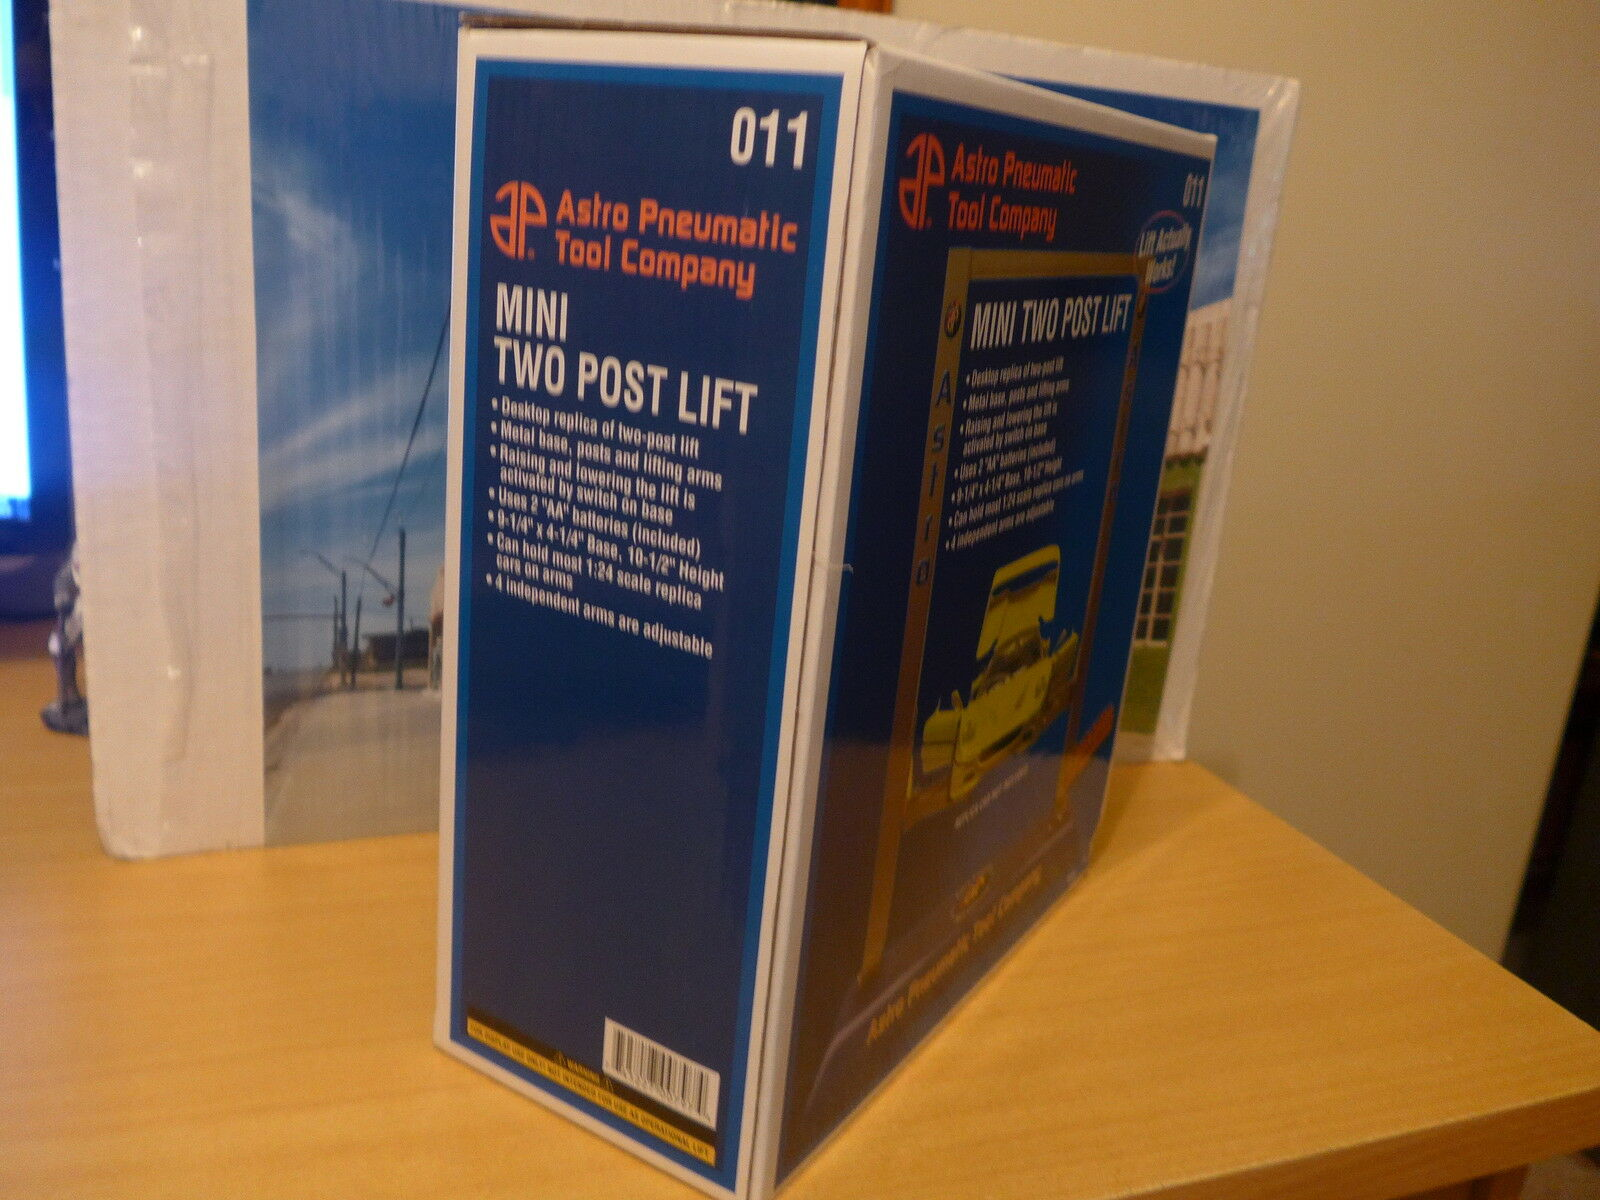 Mini two post lift for 1 24 24 24 scale diecast models new in box bd59f4